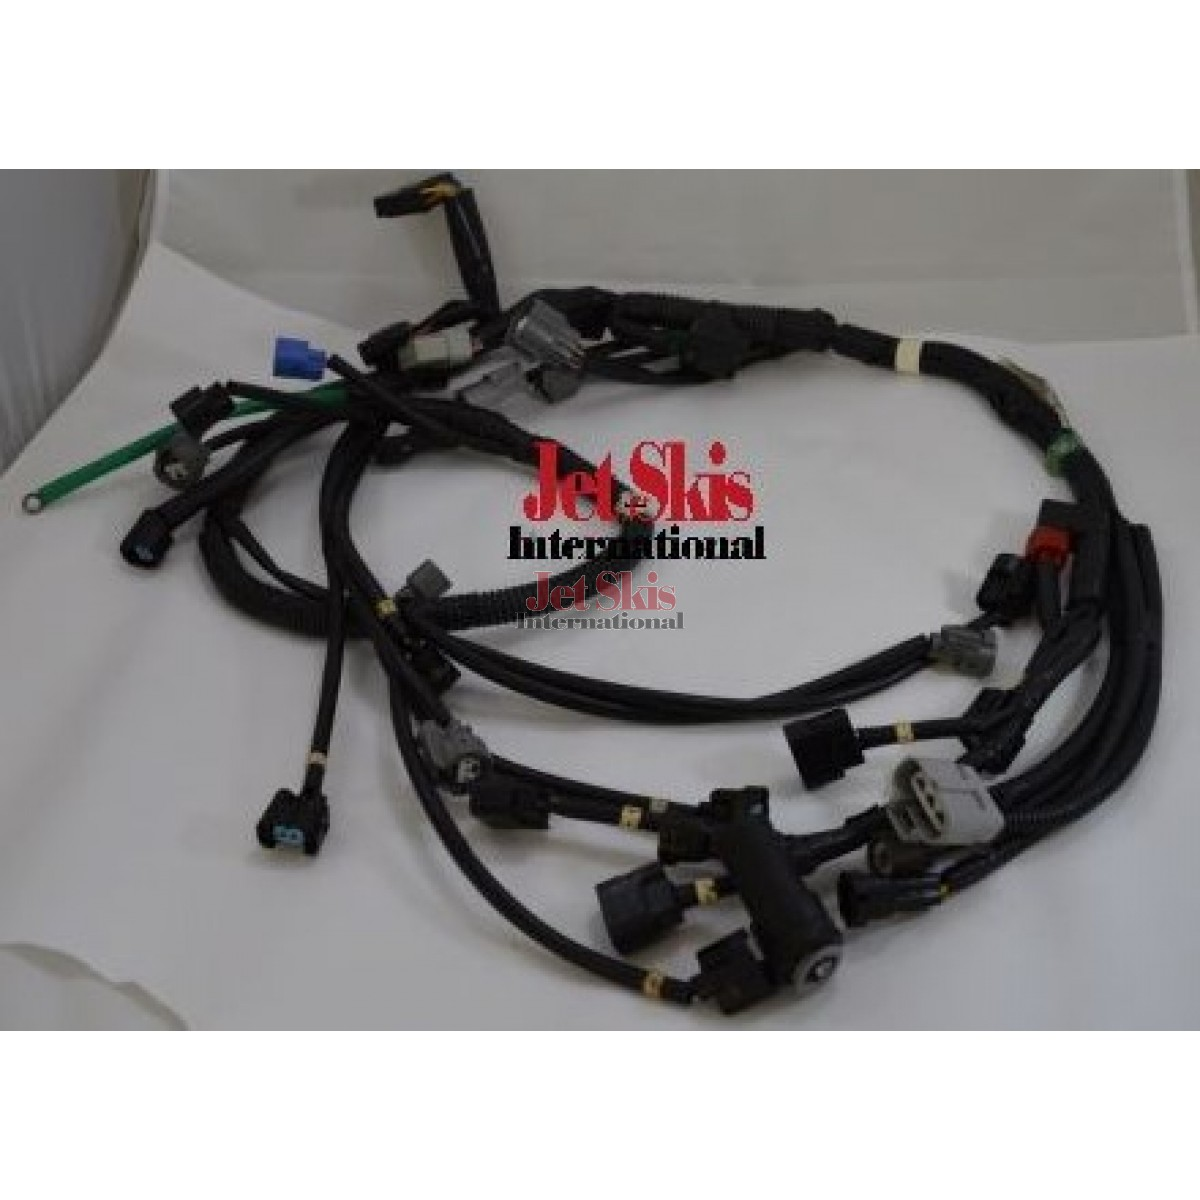 2002 honda engine wiring harness replacement 2002 honda accord wiring harness diagram 32101 hw1 680 injector and ignition coil sub harness jet #12